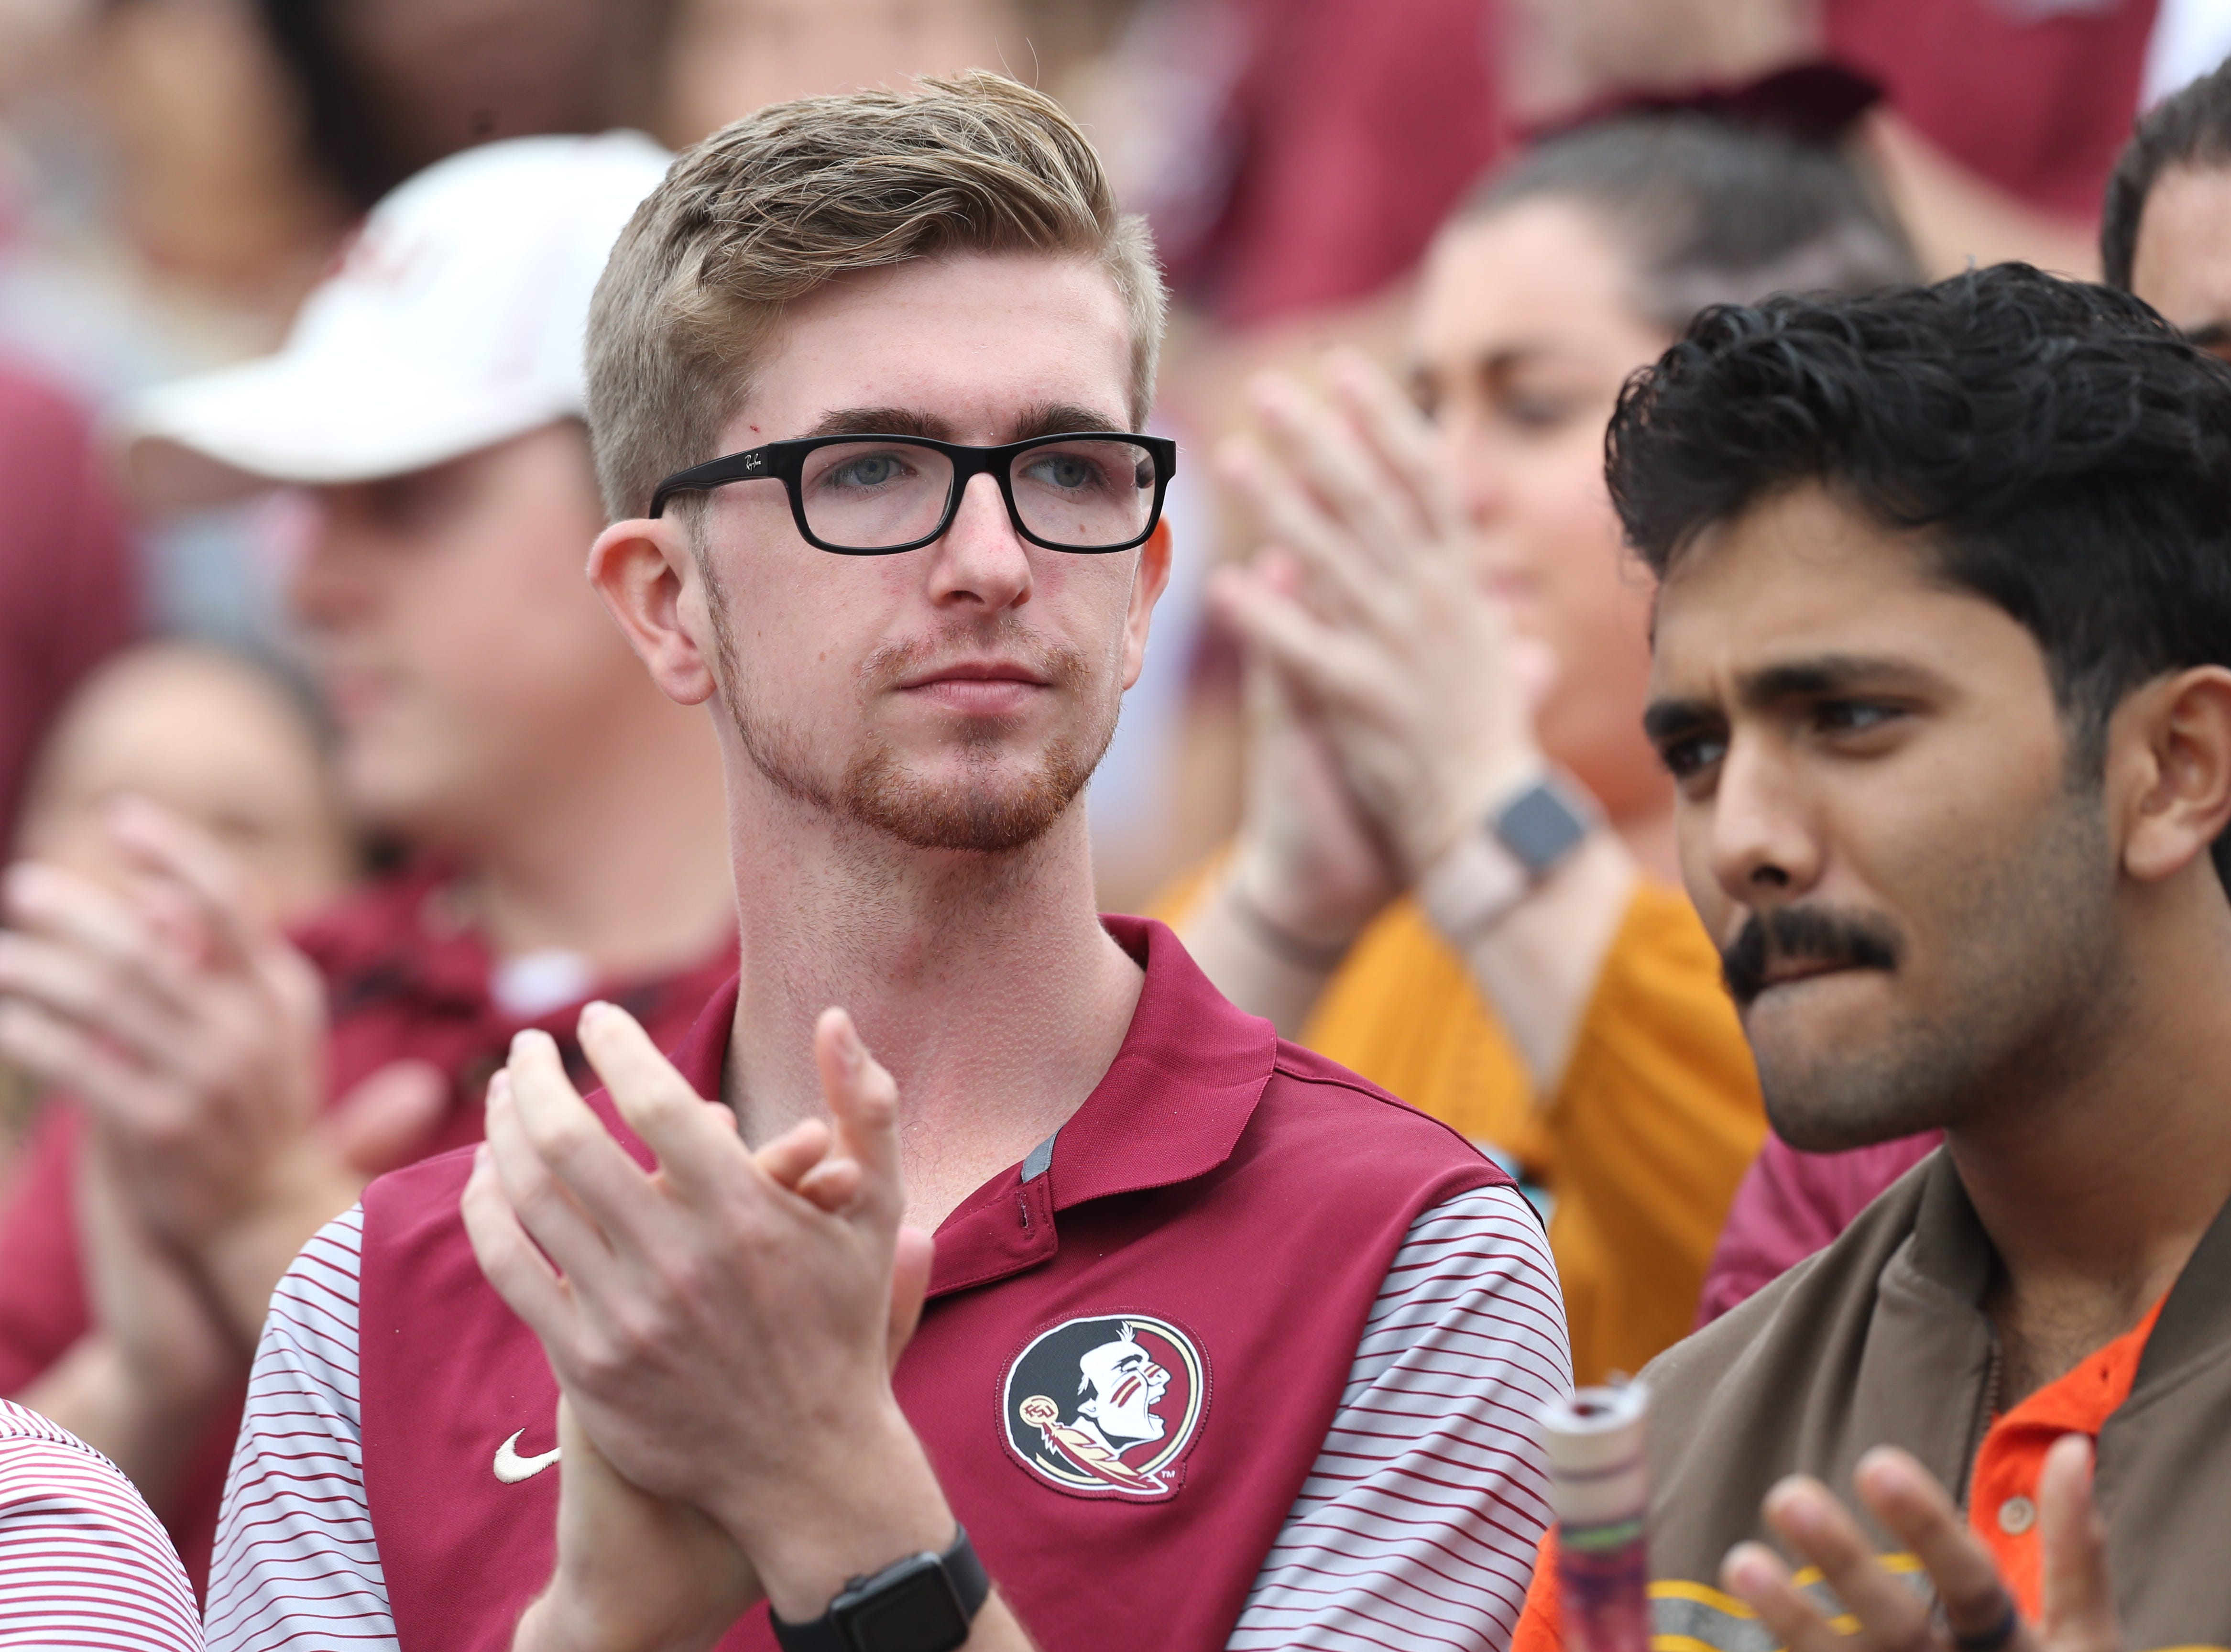 Fans cheer on their team as the Florida State Seminoles take on their rival the Florida Gators in college football at Doak S. Campbell Stadium, Saturday, Nov. 24, 2018.